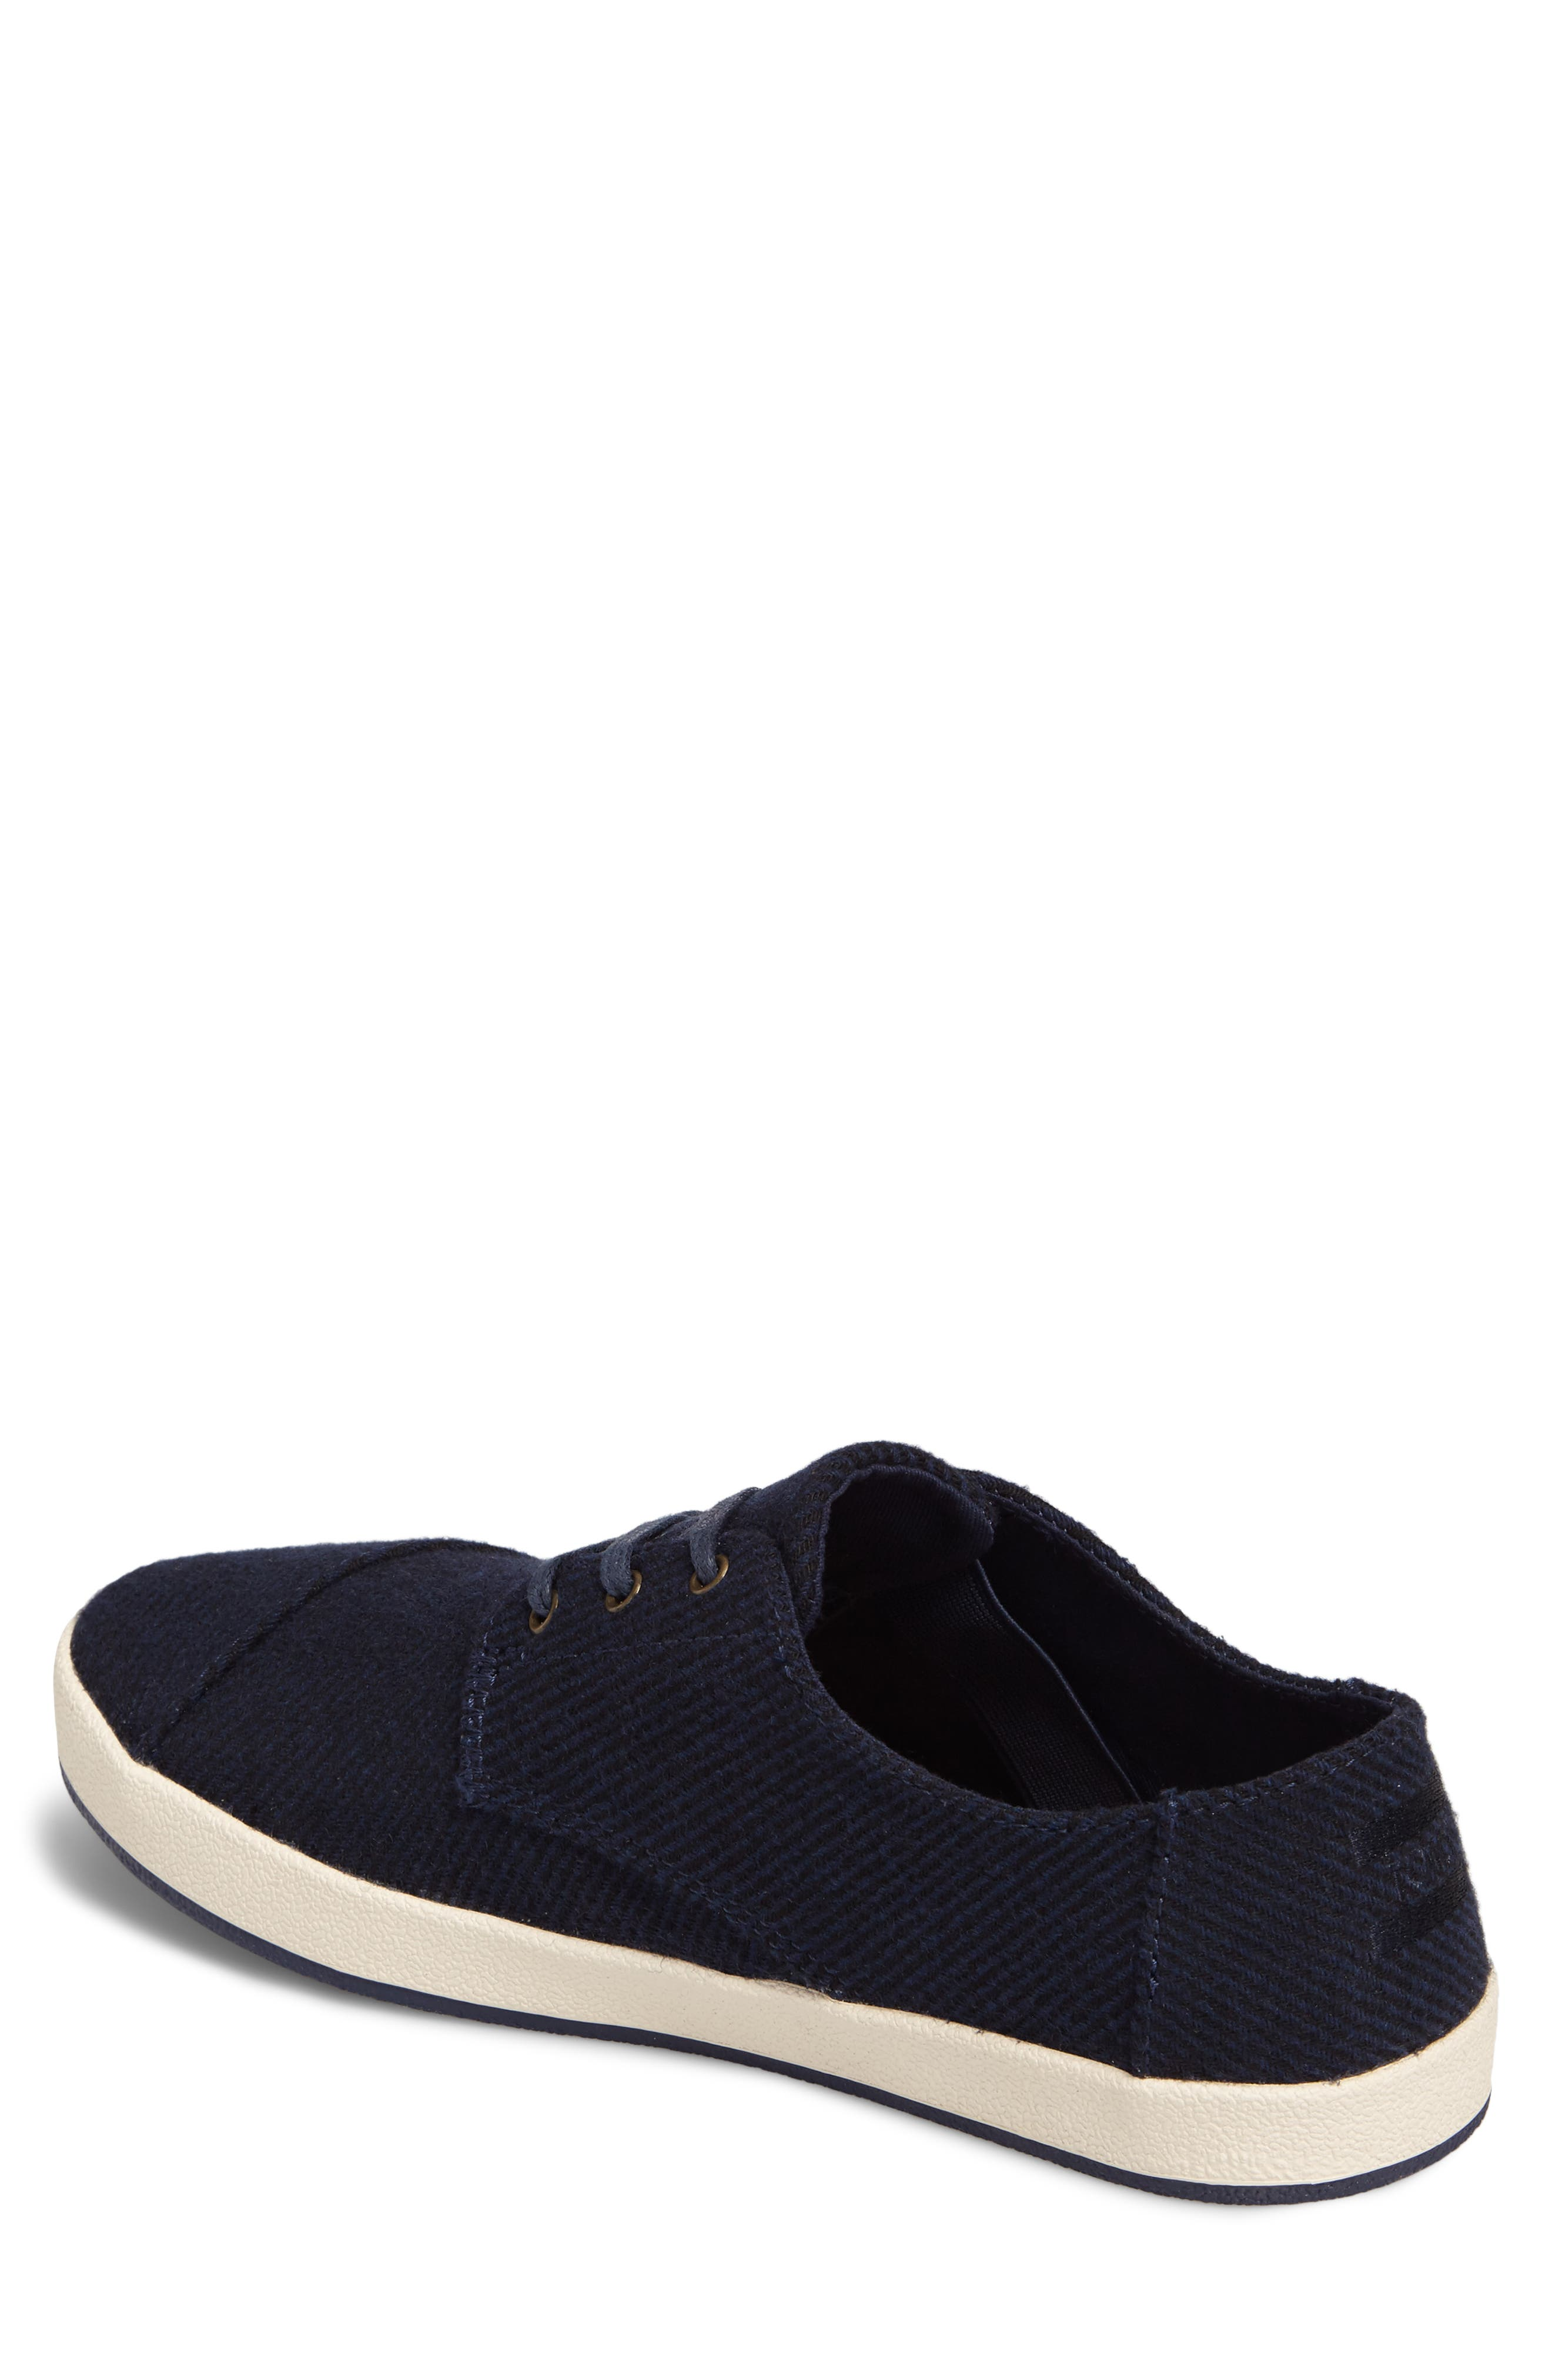 Alternate Image 2  - TOMS 'Paseo' Sneaker (Men)